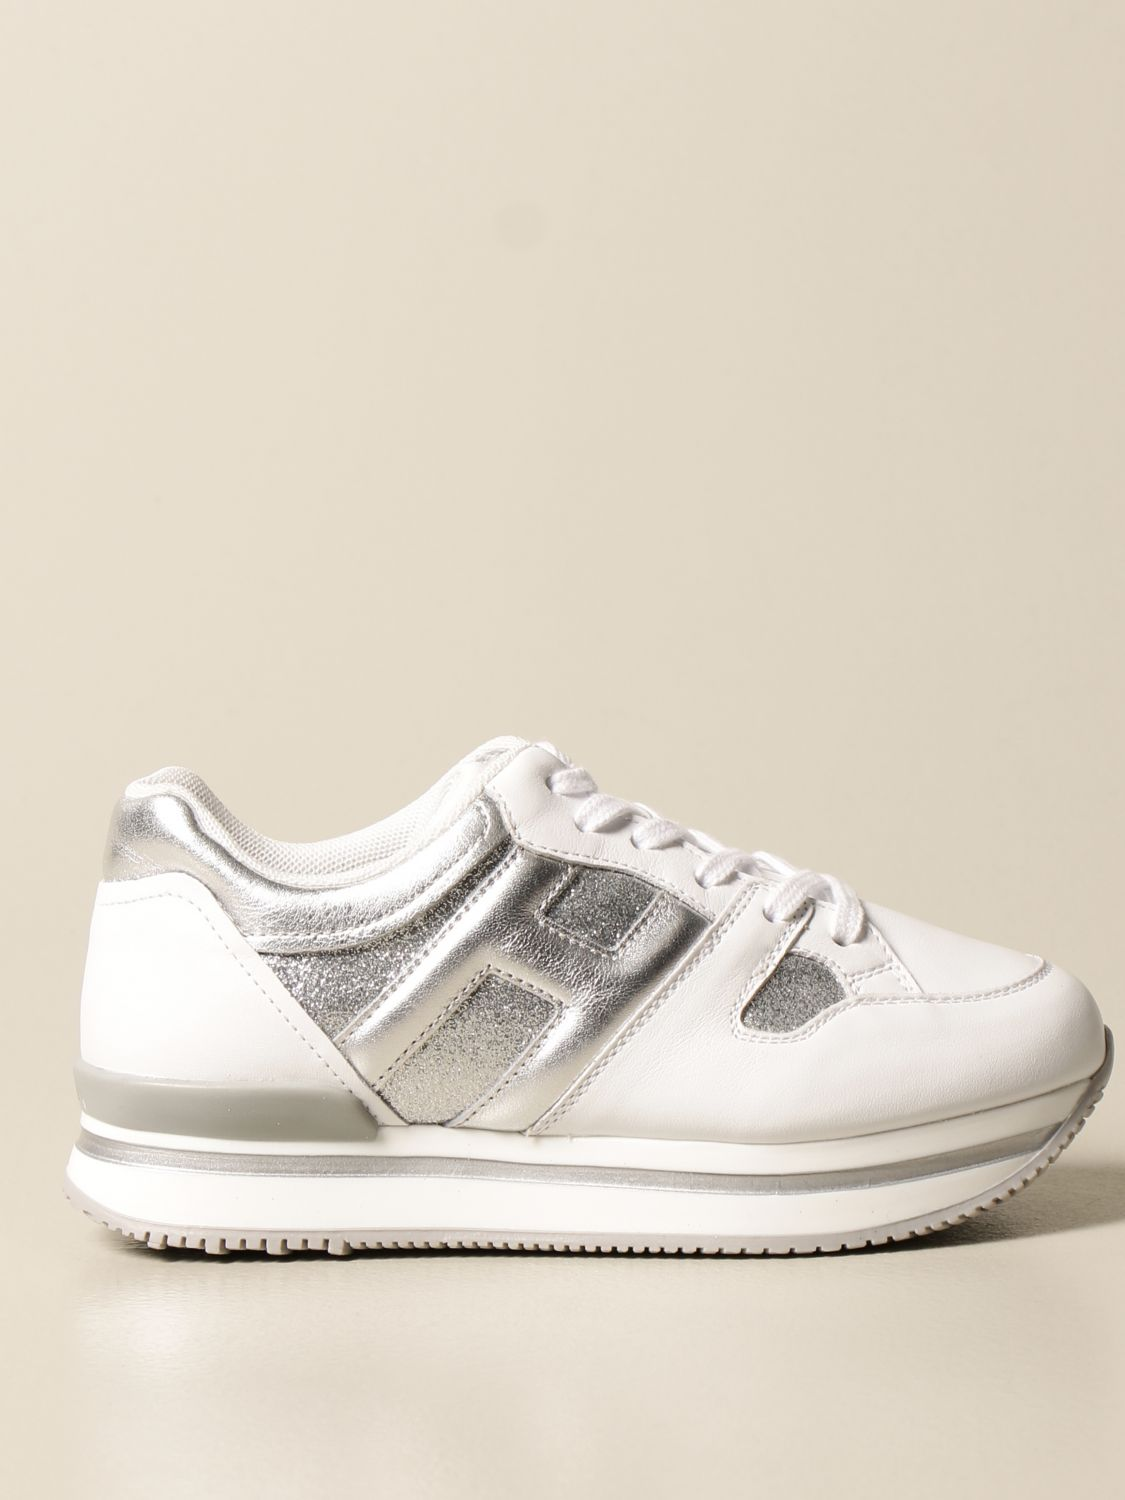 Maxi platform H222 Hogan sneakers in leather